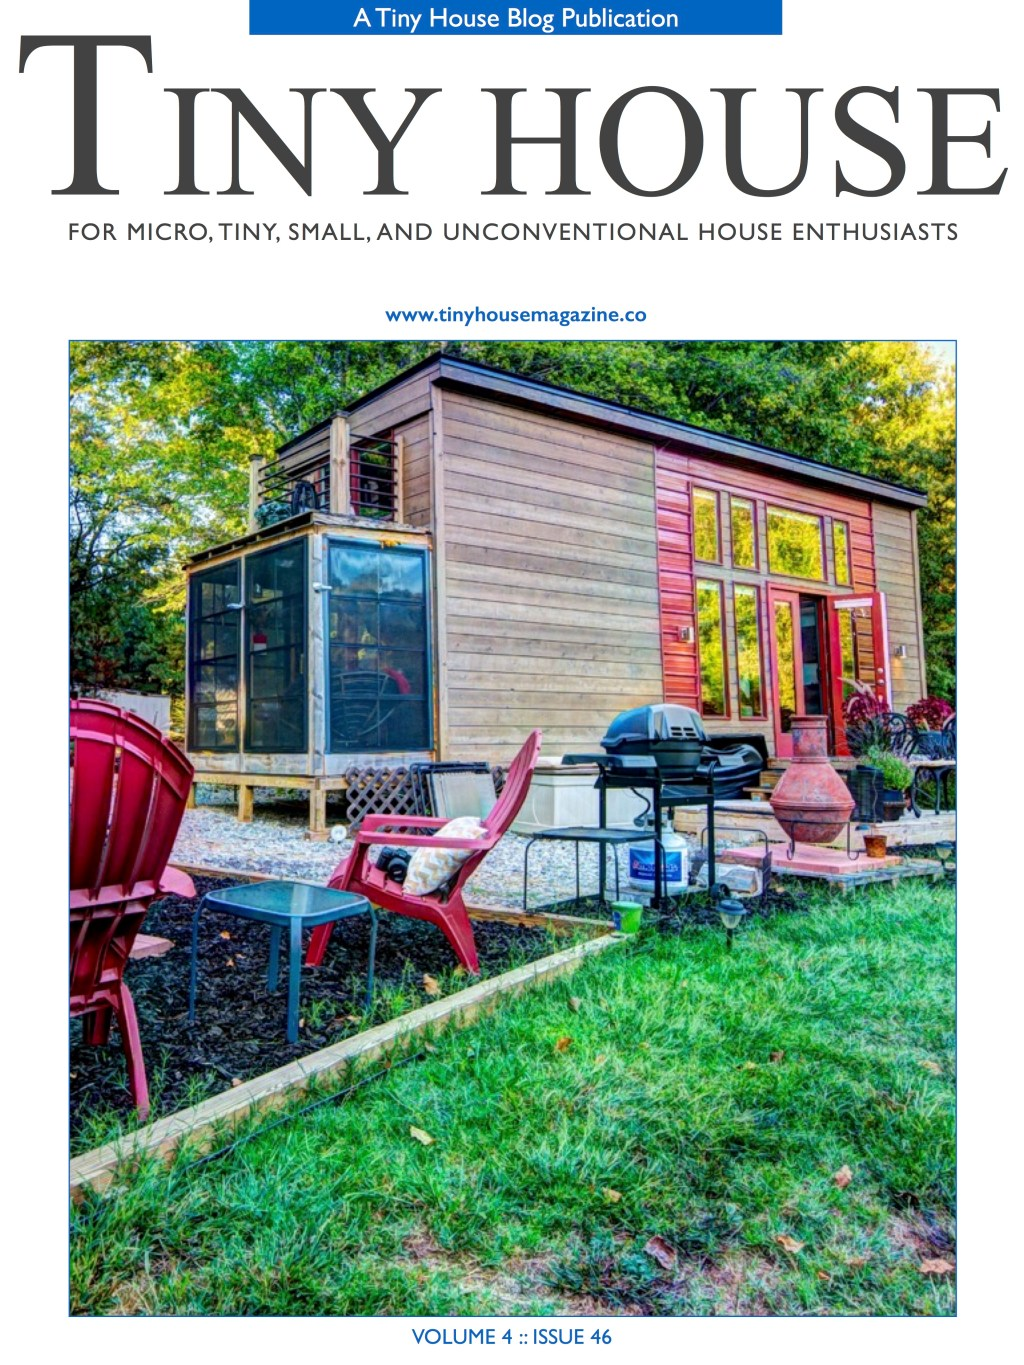 Tiny House Magazine Issue 46 is Now Available